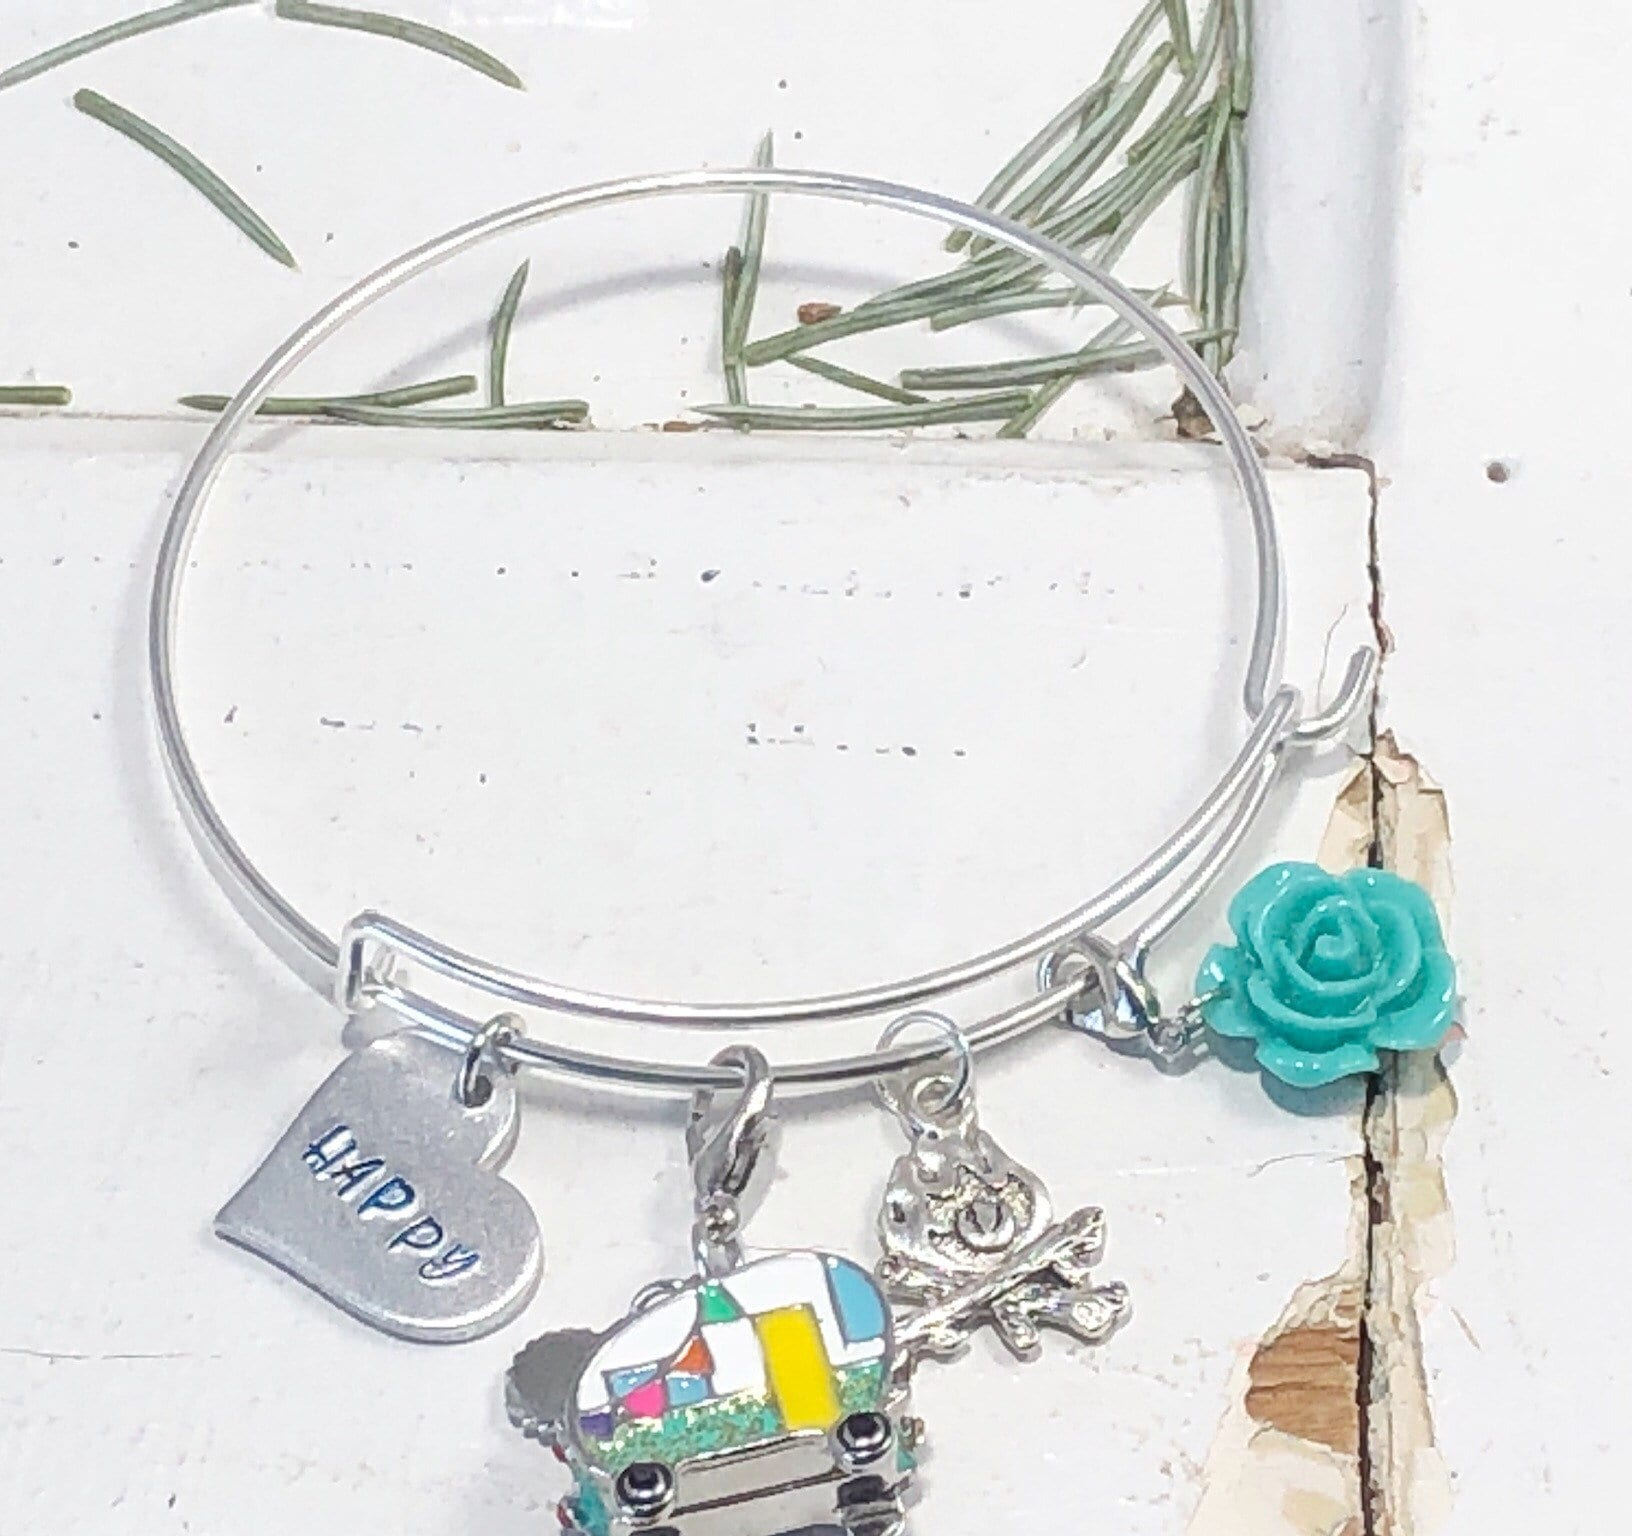 camping bracelet friendship bracelet canoe camping jewelry camping camp counselor gift summer camping gift for her sailing camper